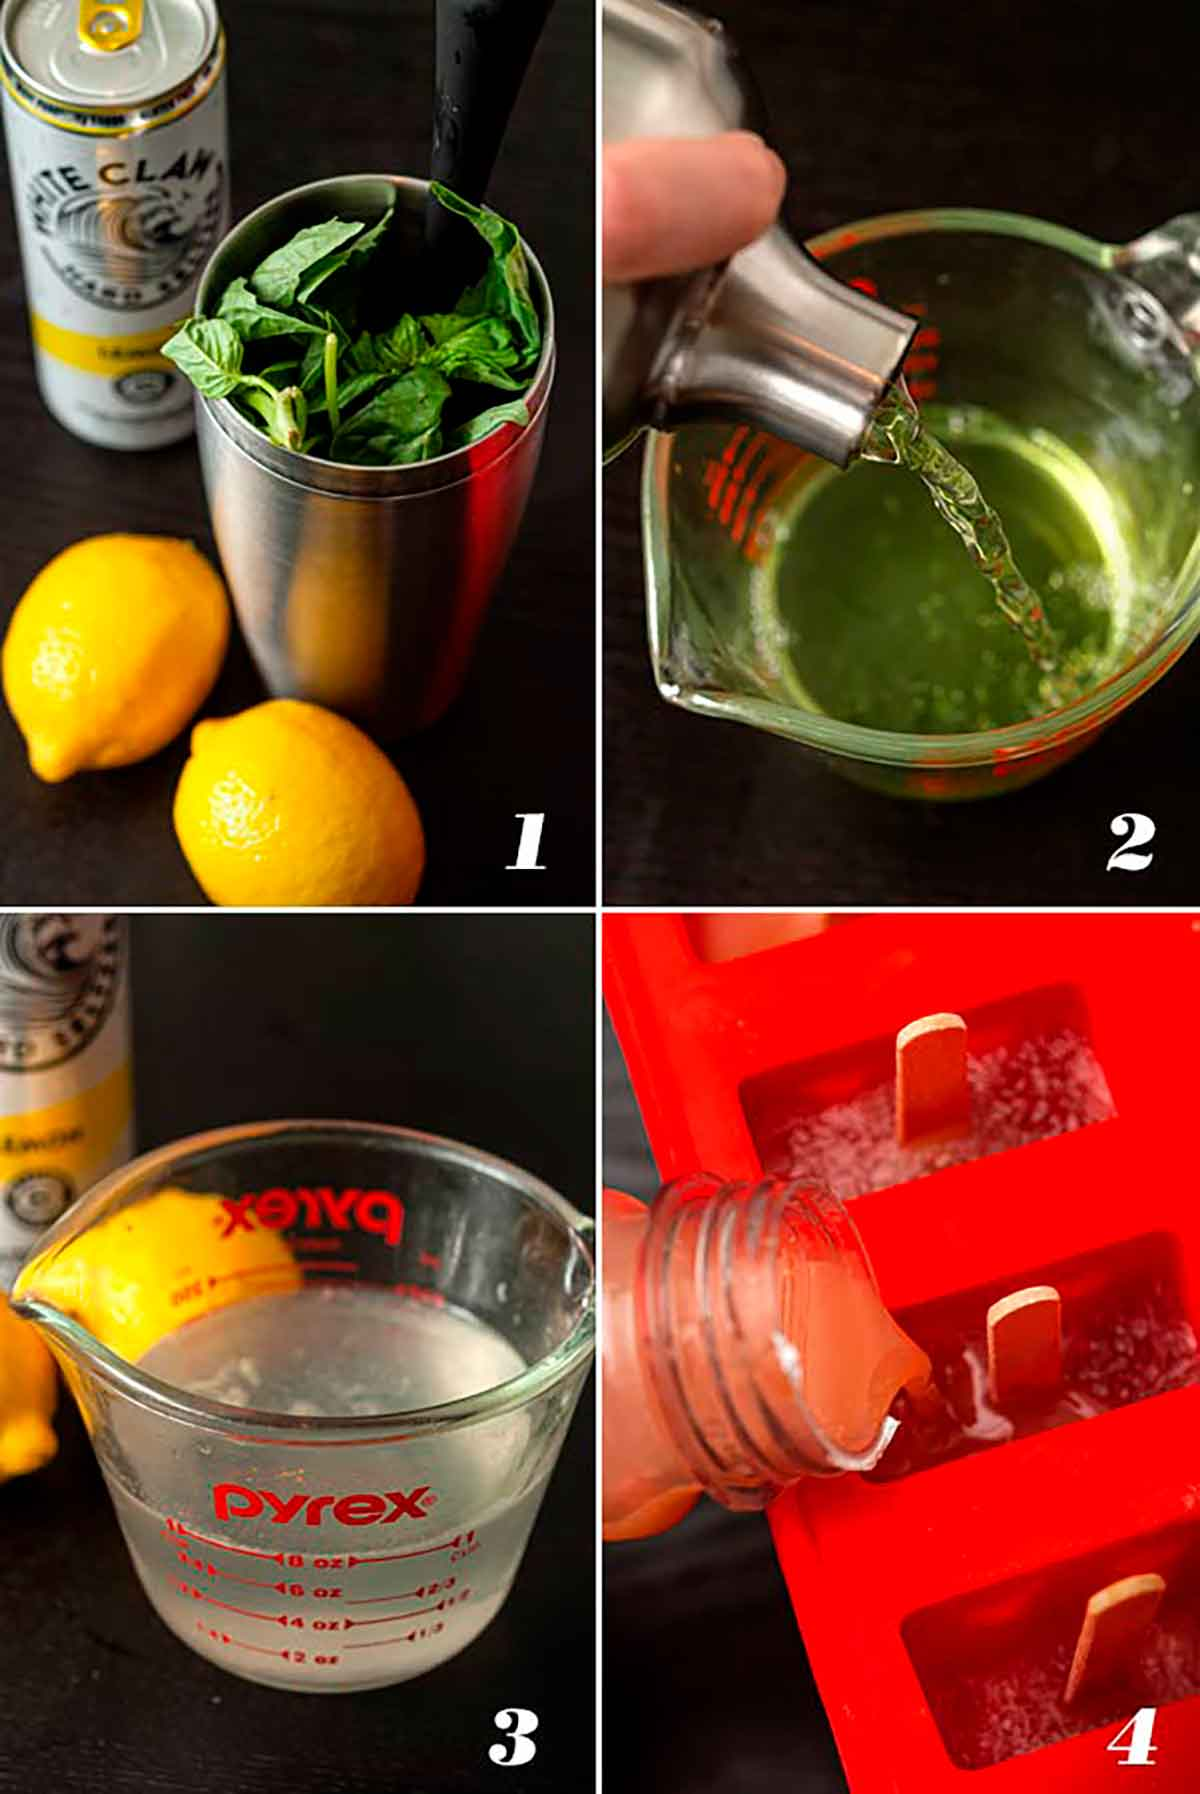 A collage of 4 numbered images showing how to make White Claw ice pops.